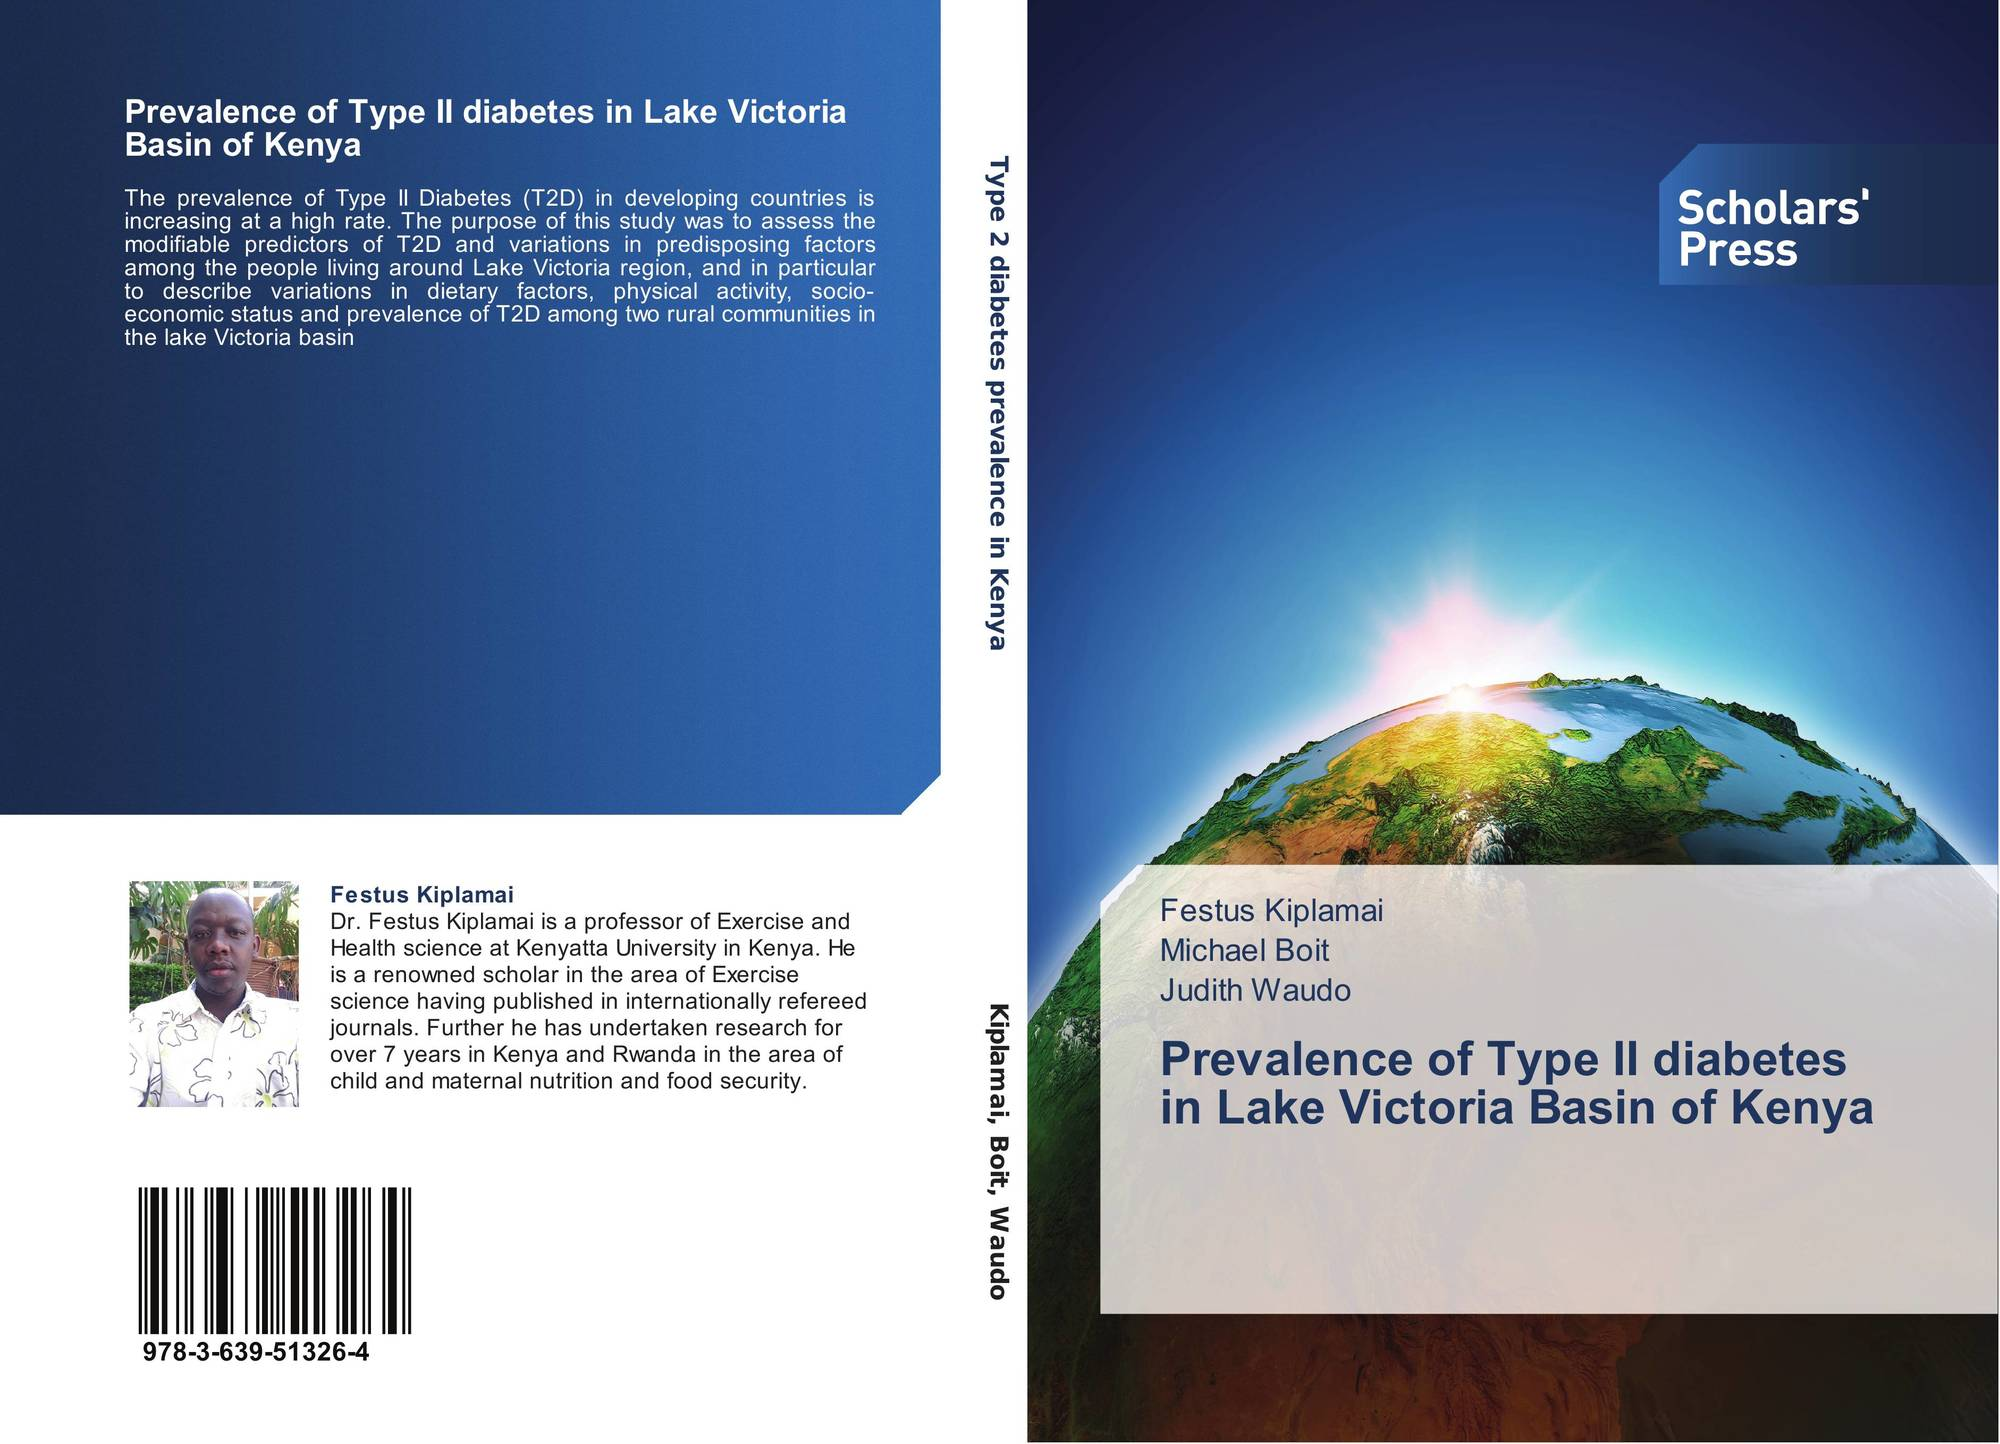 the development and characterization of victor This bookfocuses on the characterization of minerals, metals, and materials as well as welding, solidification, and method development in and victor m.